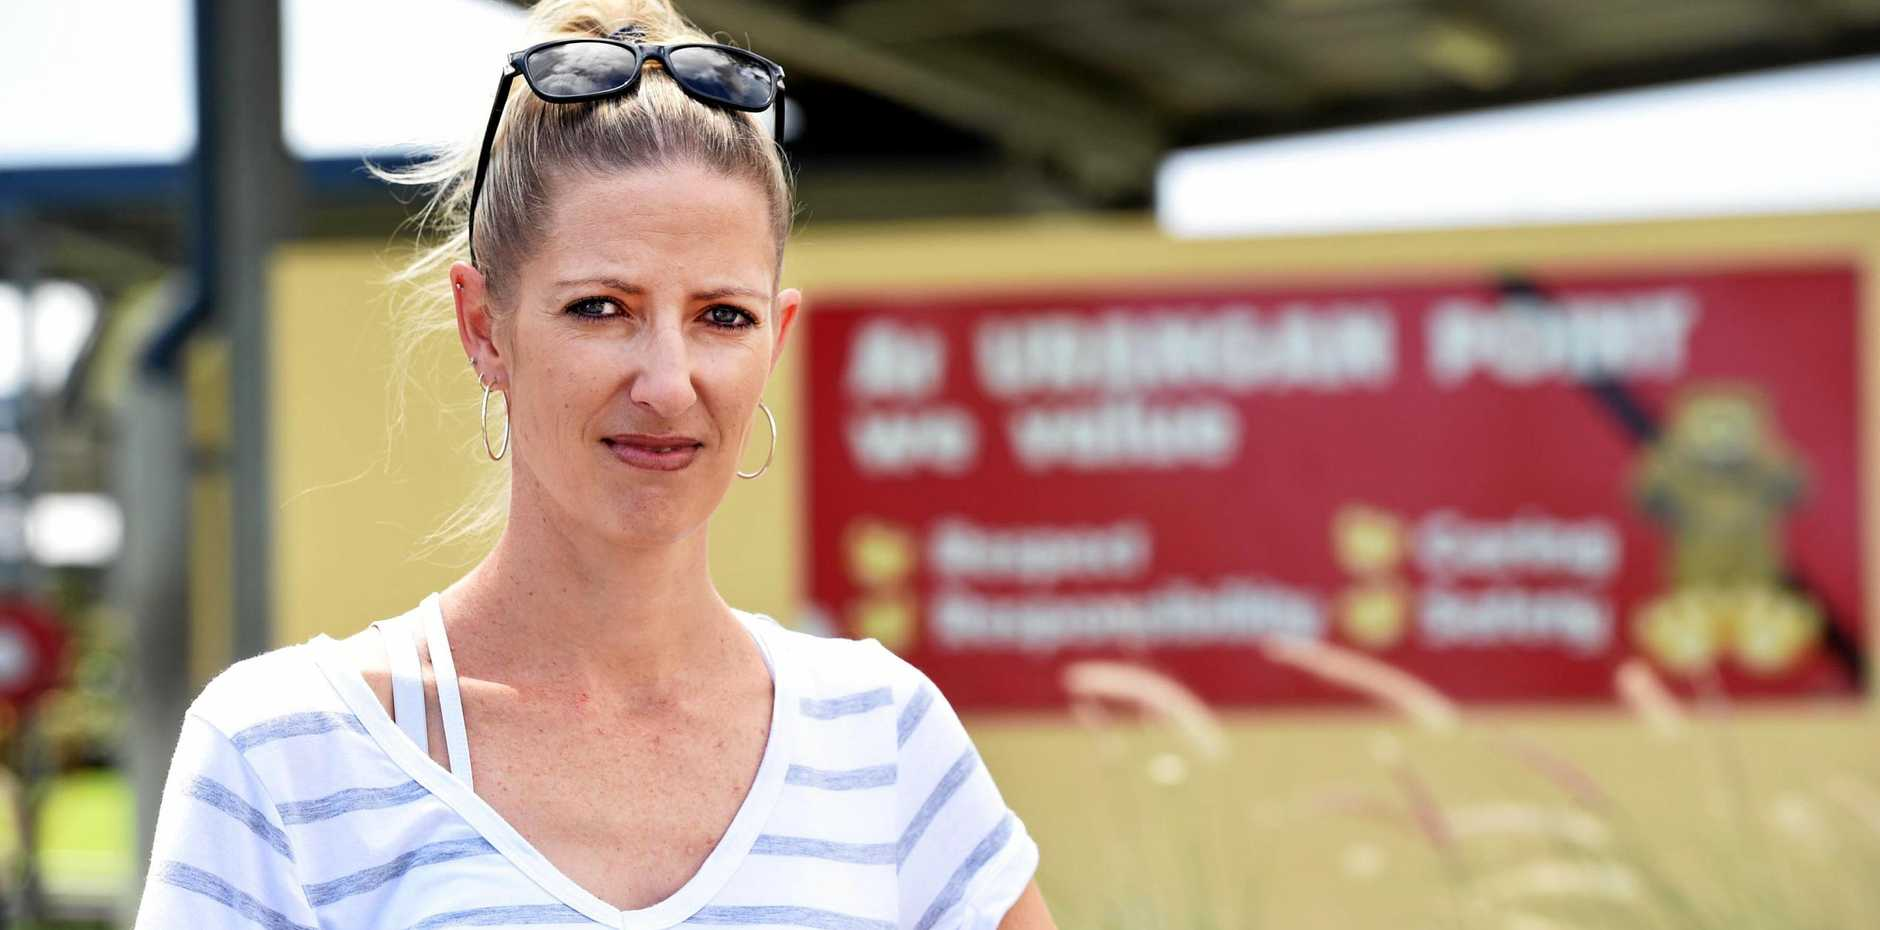 TOO HOT: Urangan Point State School's Parents and Citizens' committee is committed to air conditioning their school and secretary Katie Norris won't stop until she sees it happen.